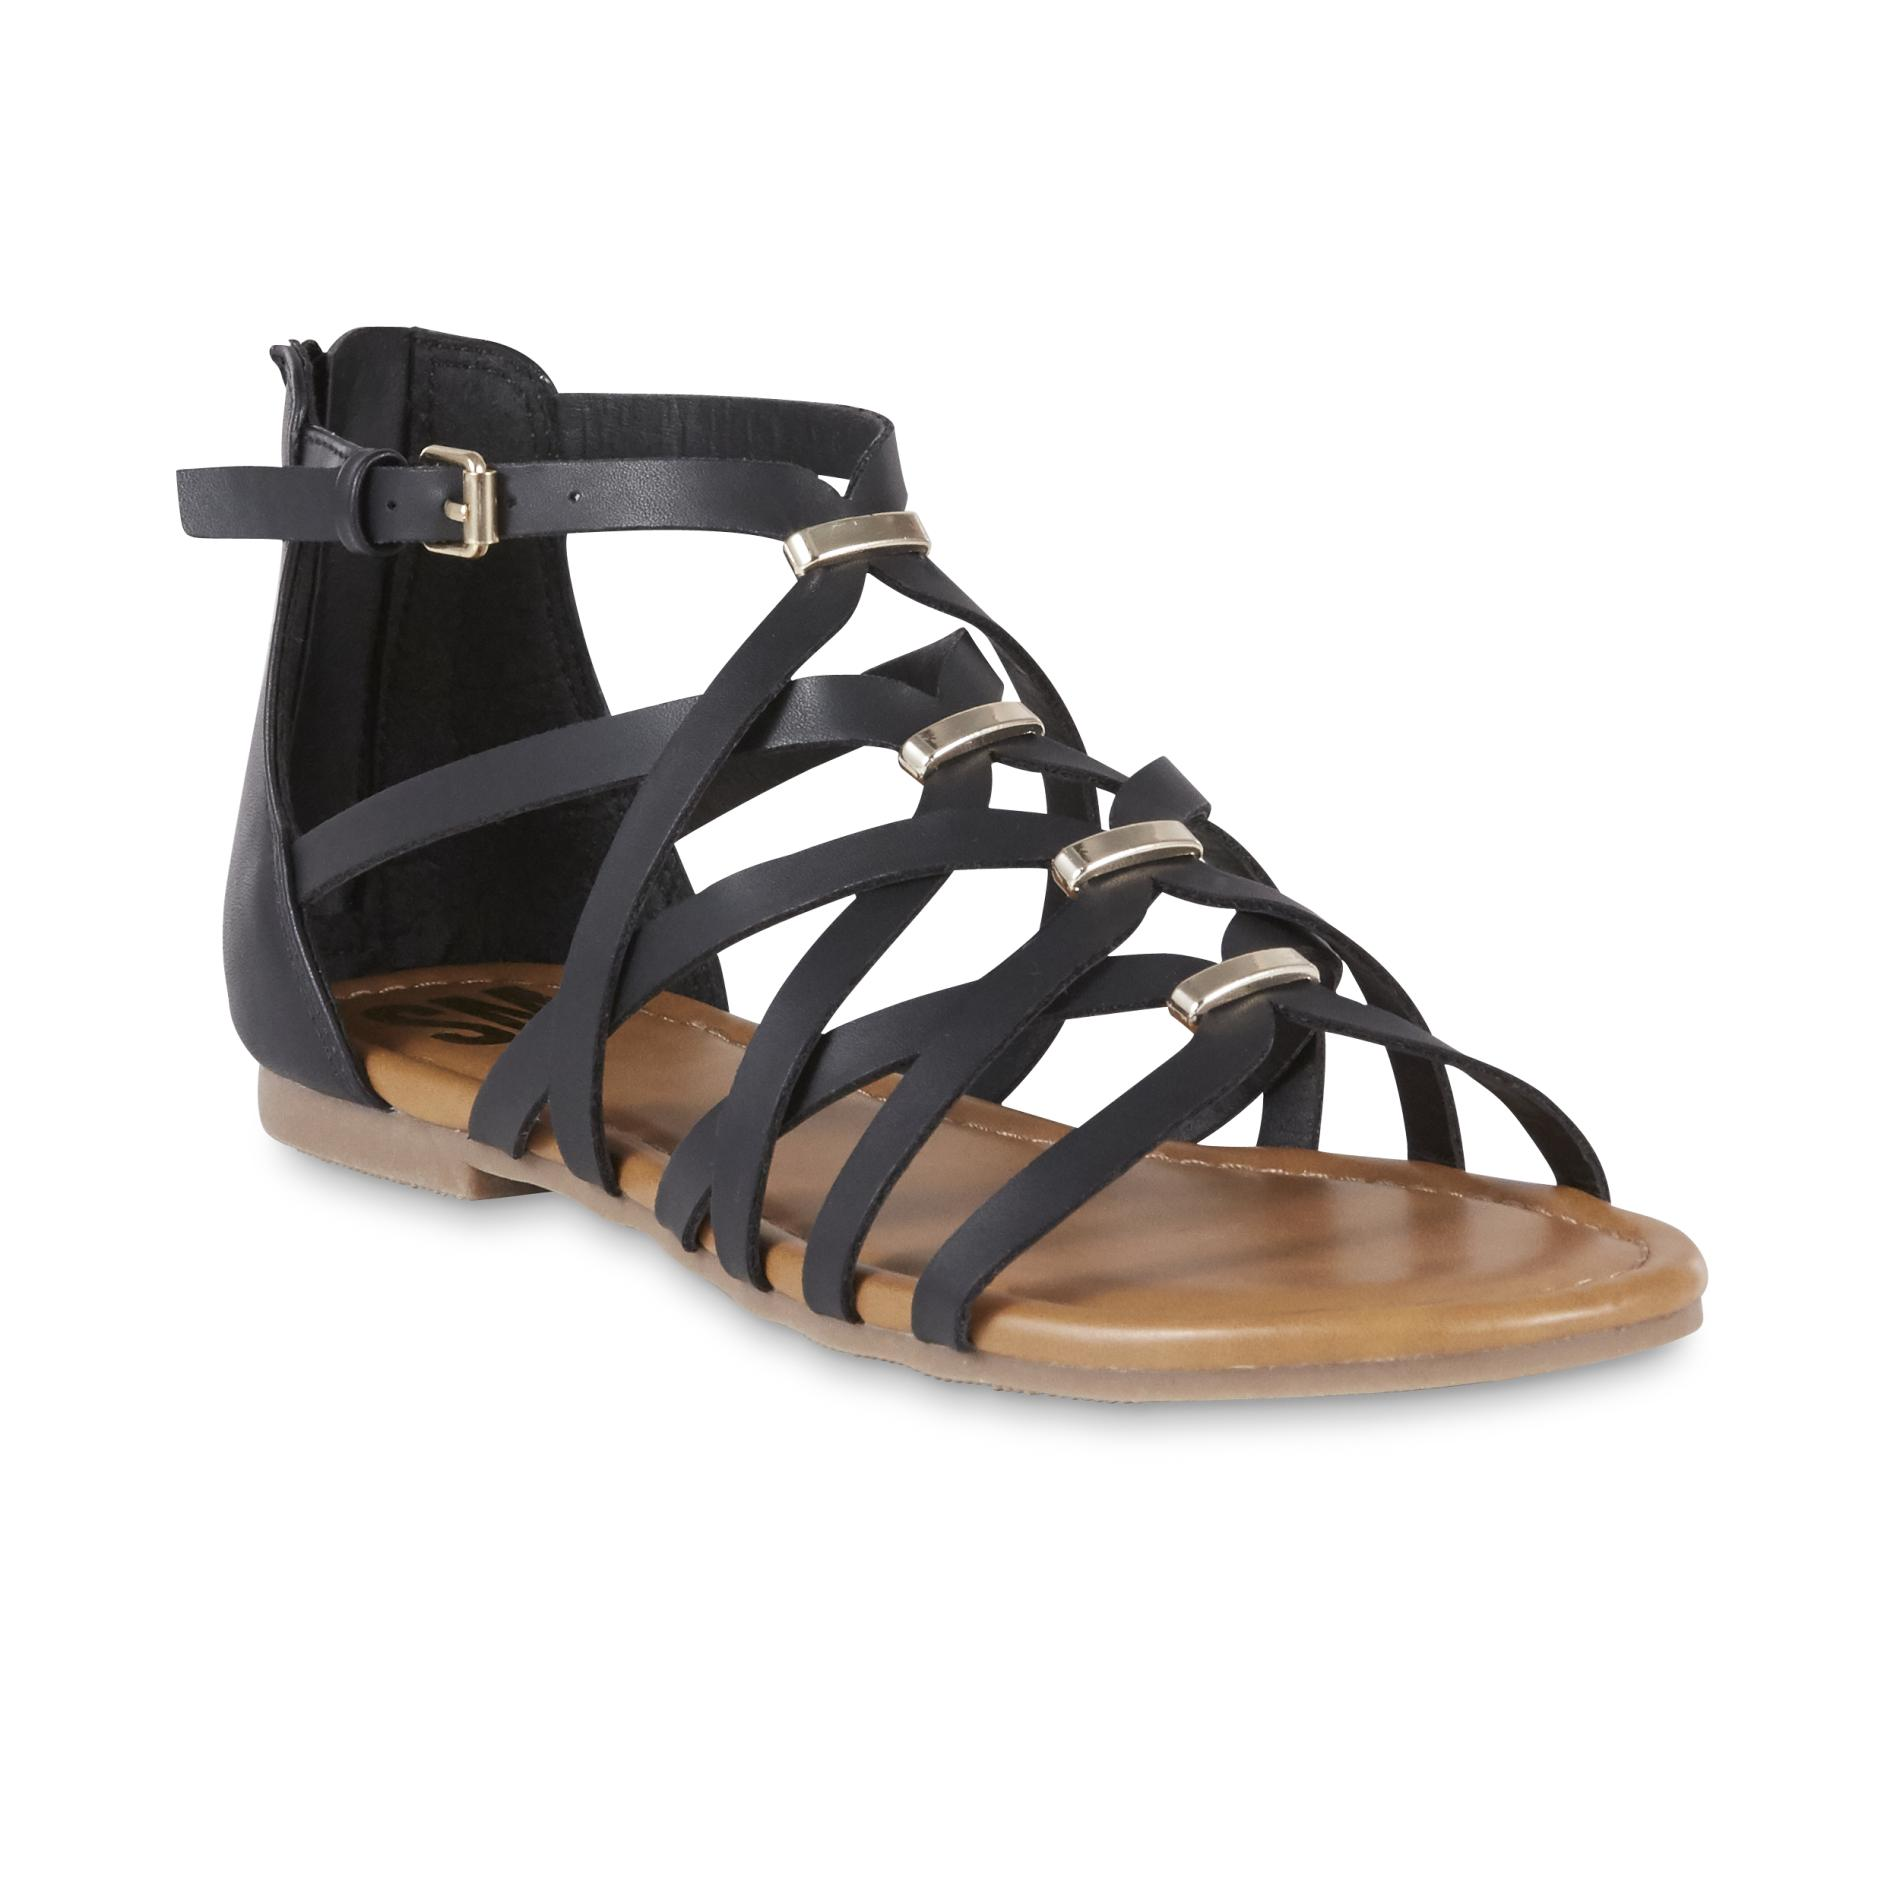 Online way is best way to get womens sandals